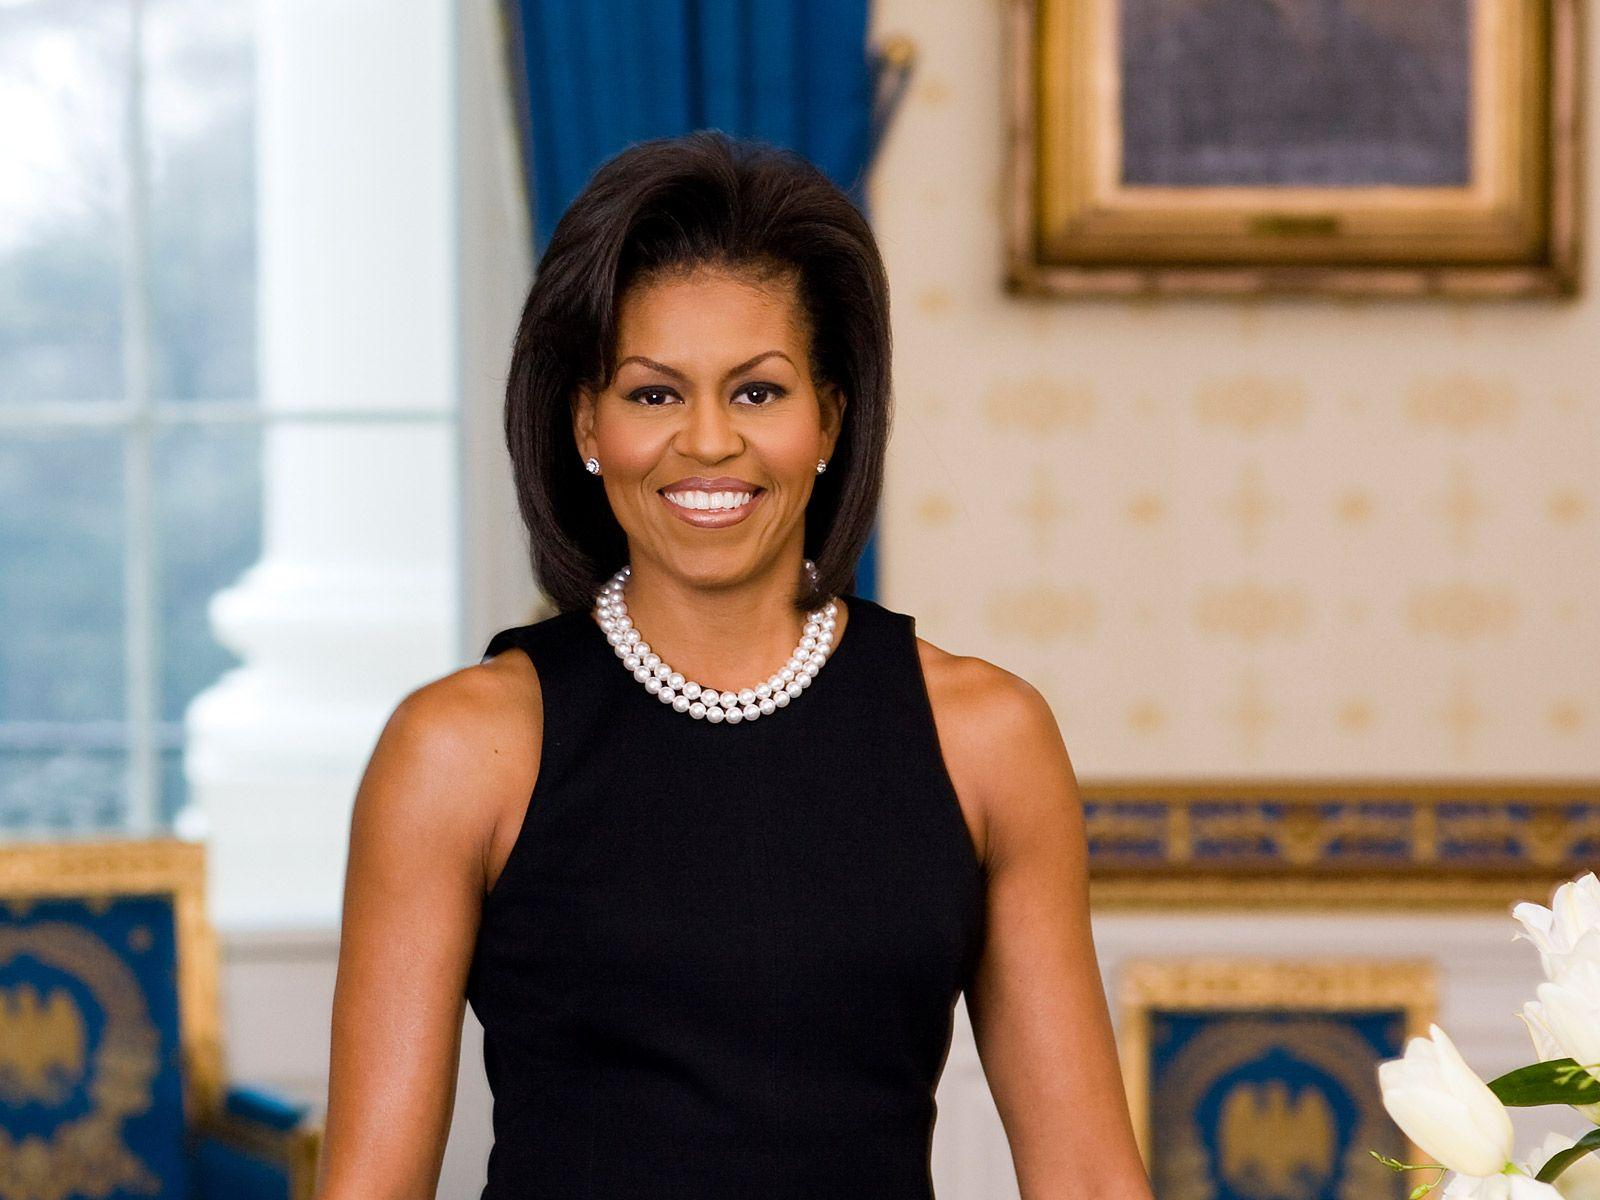 1600x1200 - Michelle Obama Wallpapers 5